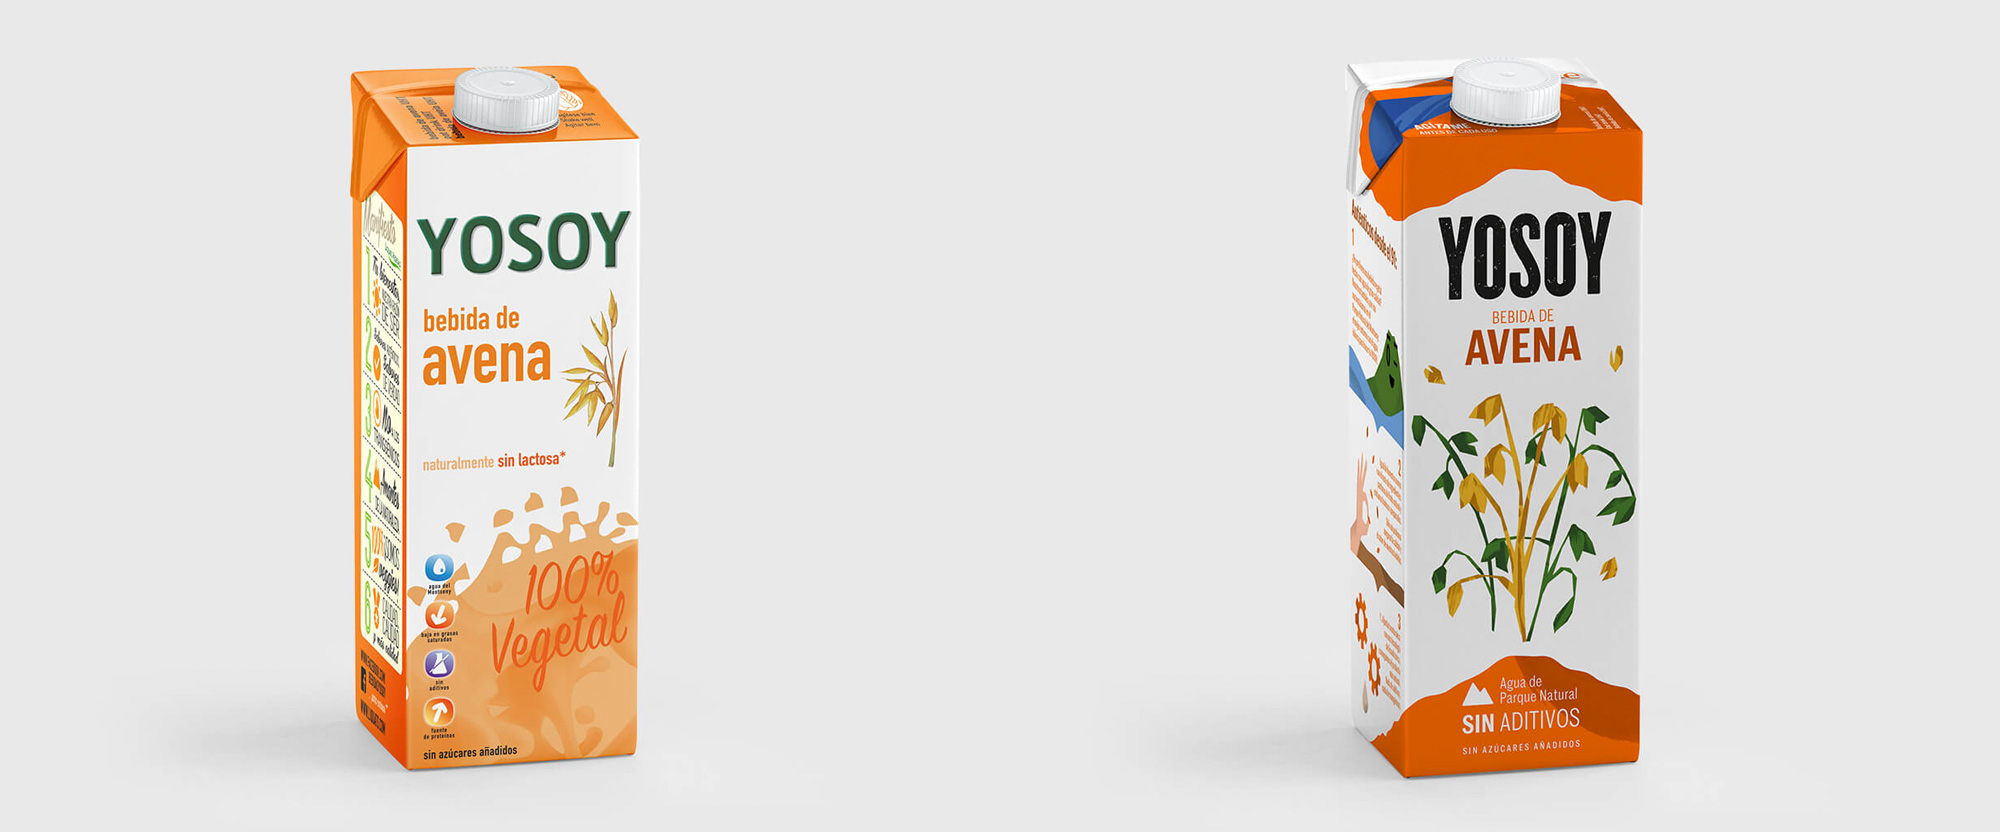 New Logo and Packaging for Yosoy by Mucho